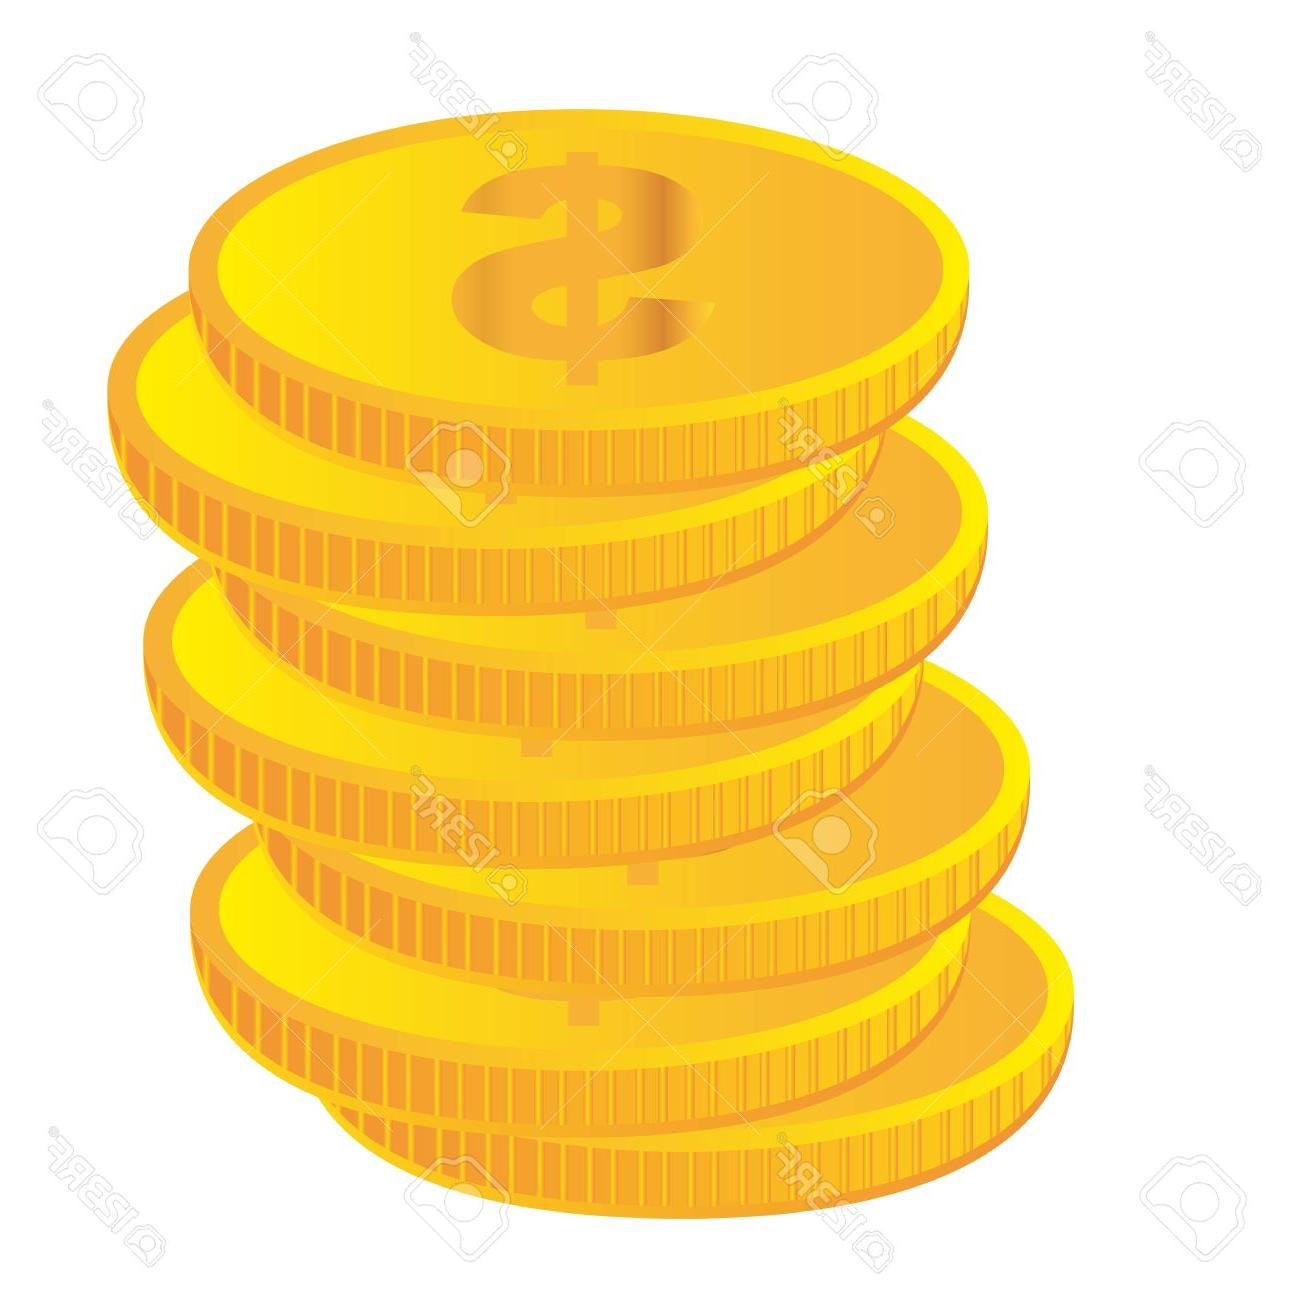 Vector gold coins clipart svg black and white stock Unique Gold Coin Clip Art Vector Images » Free Vector Art ... svg black and white stock